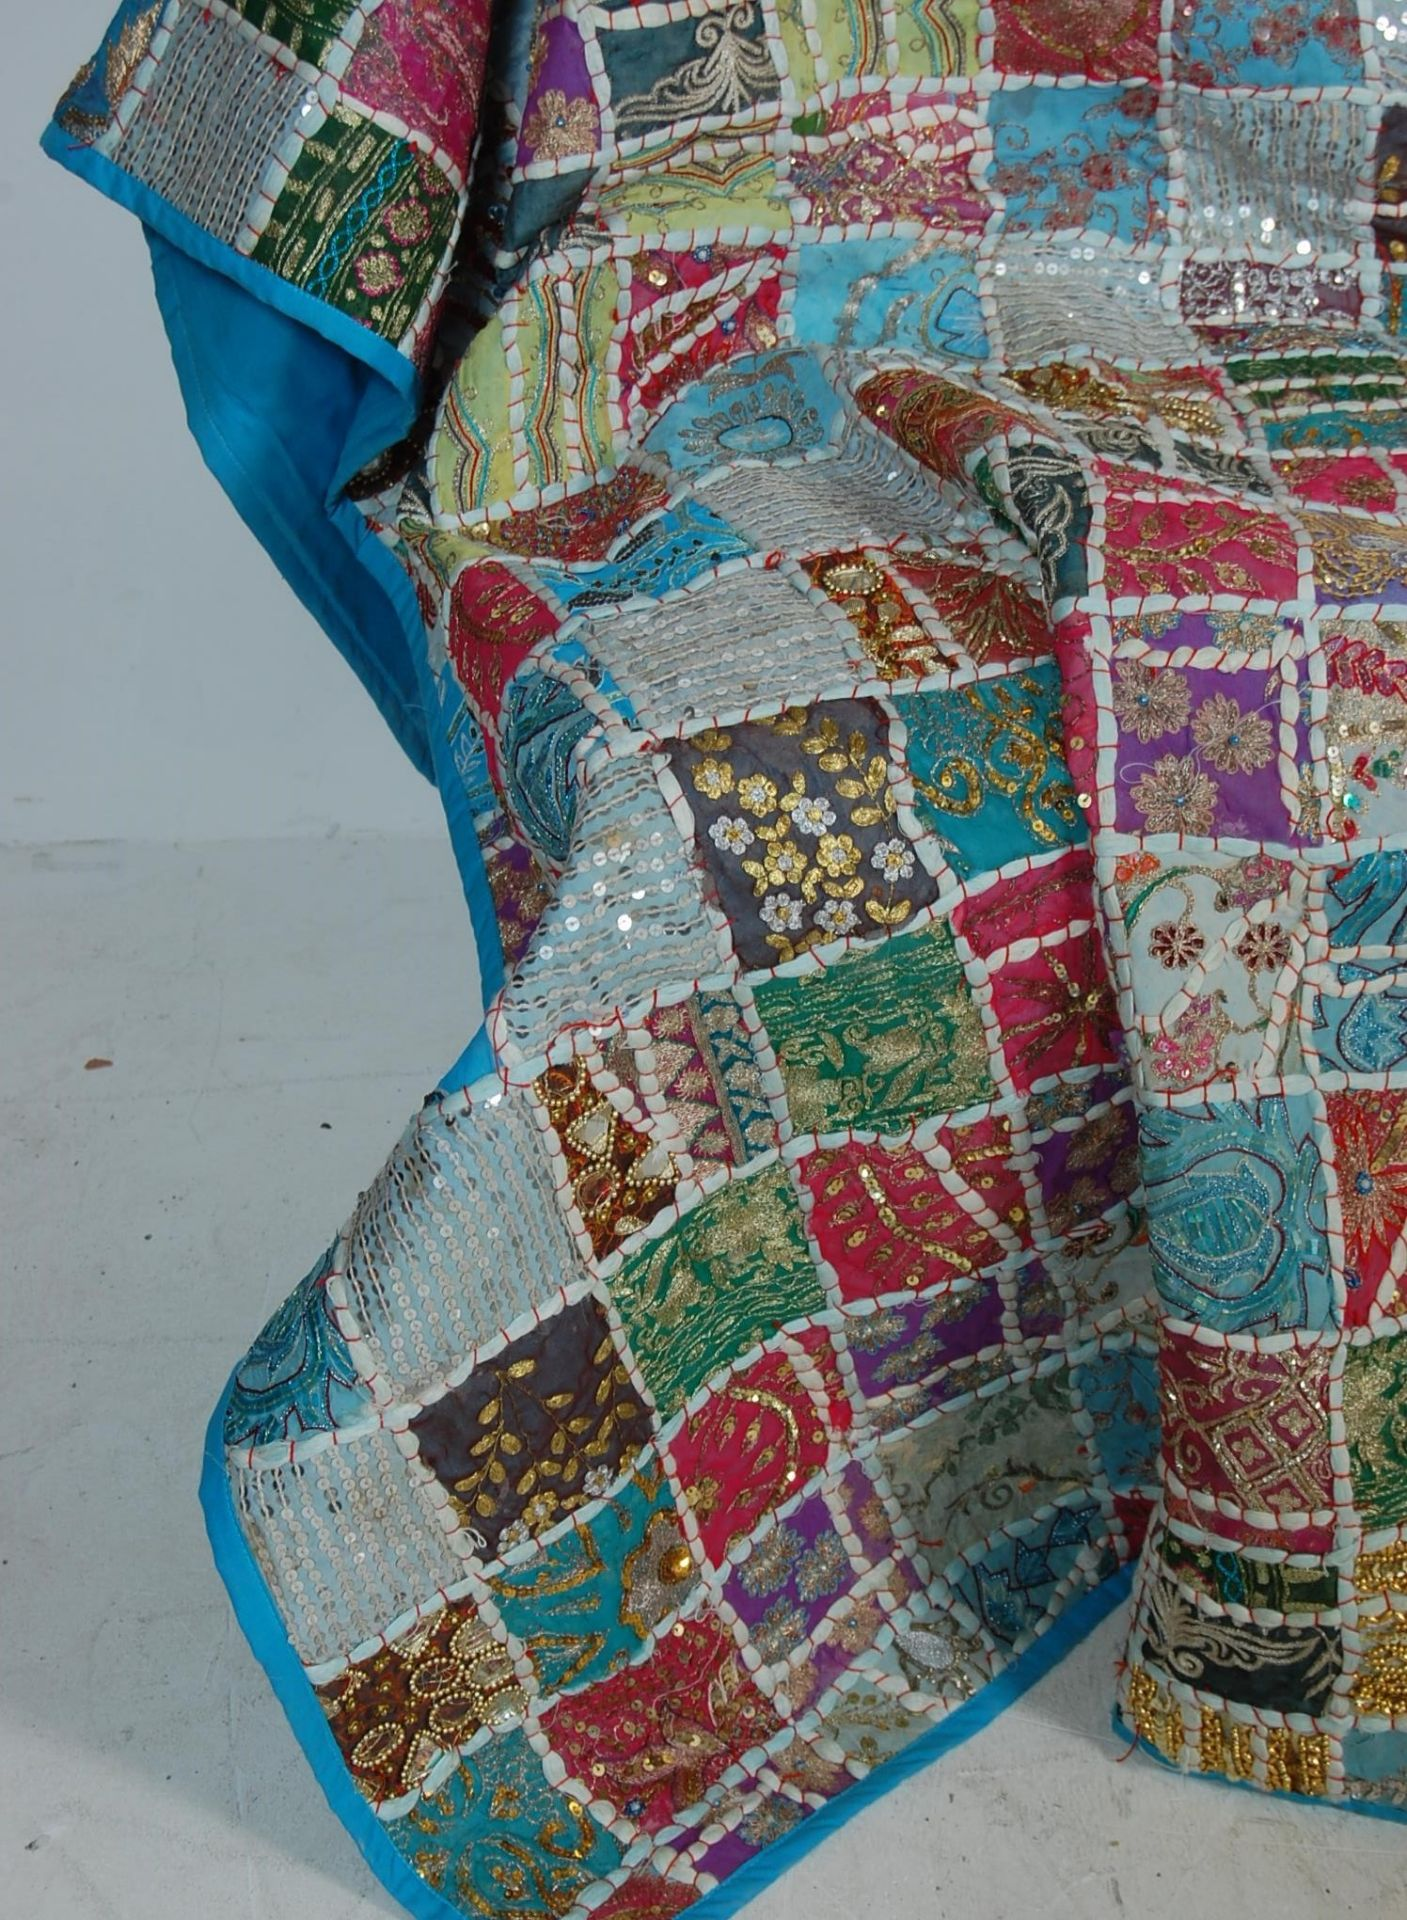 20TH CENTURY ANTIQUE STYLE TRADITIONAL PAKISTANI / RAJASTHANI / INDIAN PATCHWORK QUILT BED THROW